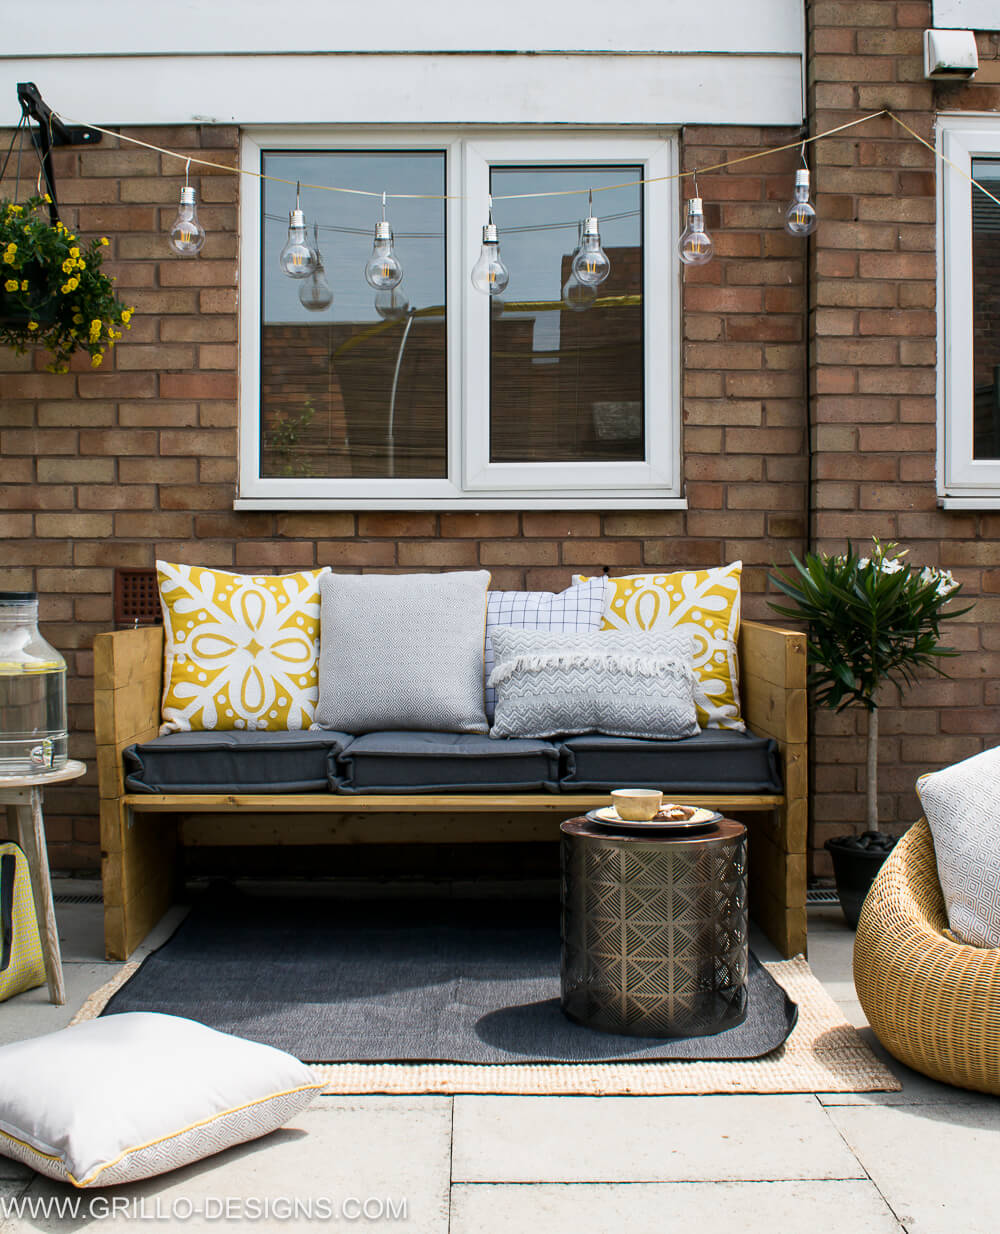 Stylish outdoor sofa seat in the garden / grillo designs